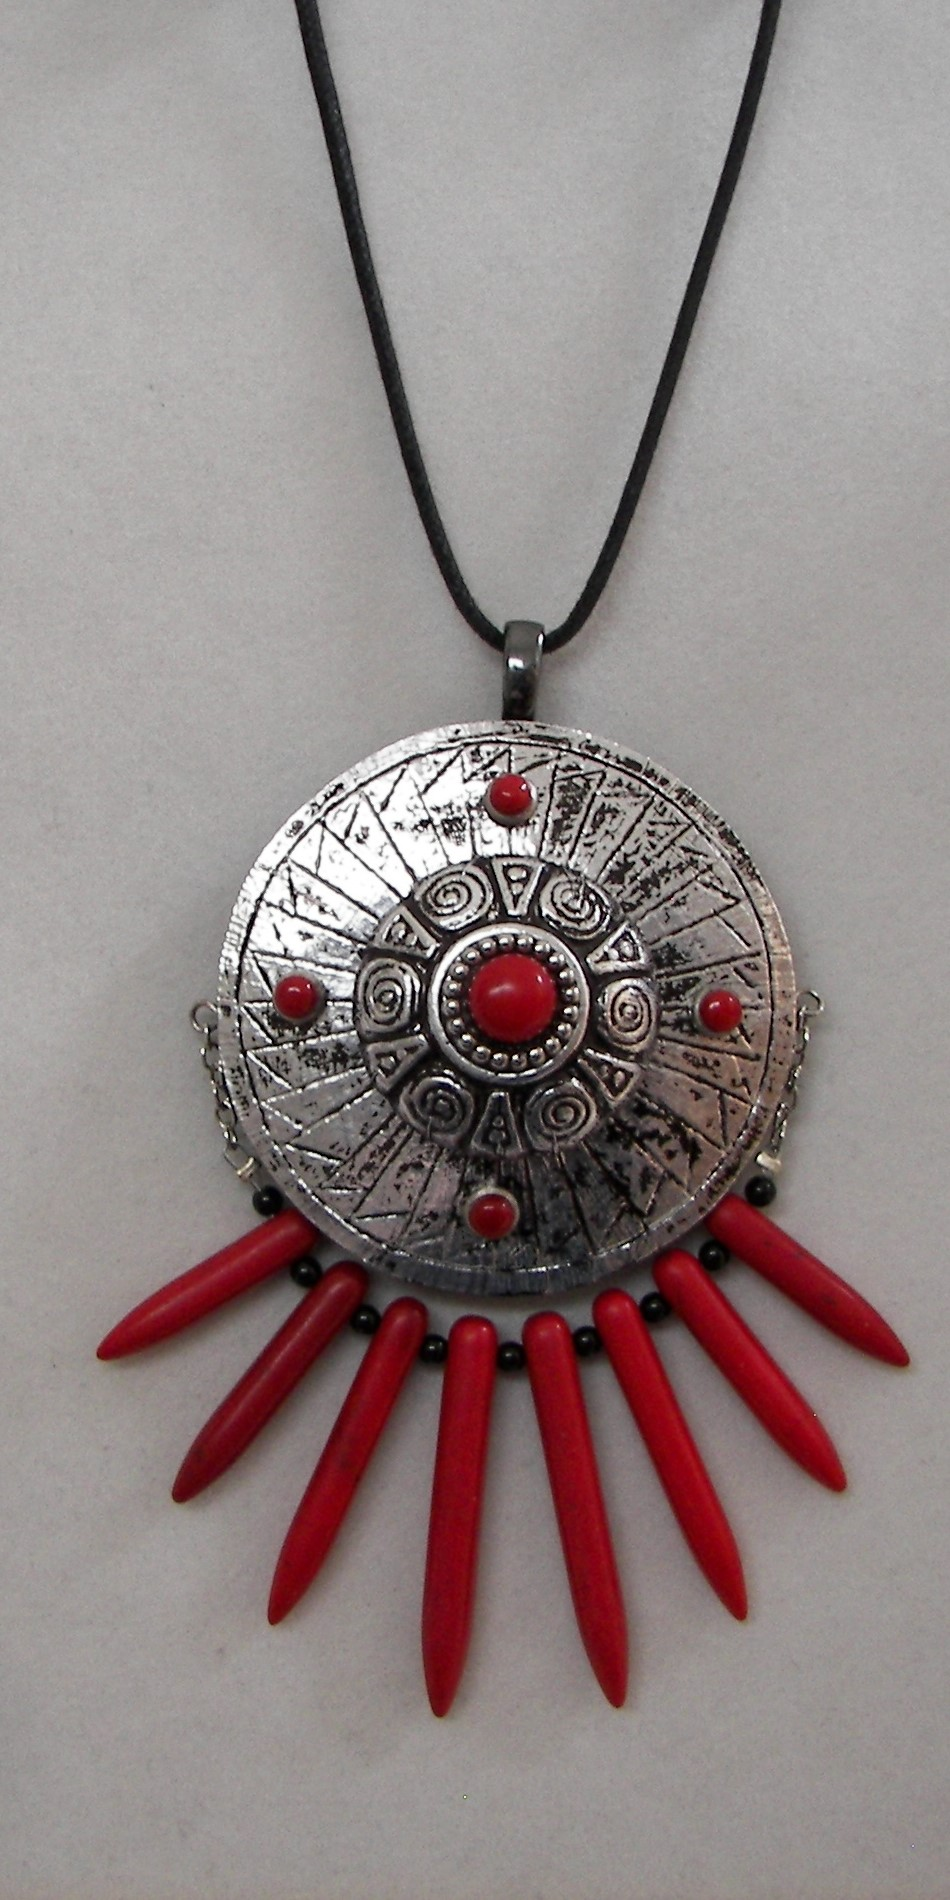 Class-Jewelry-Silver-Coral-7-11-18